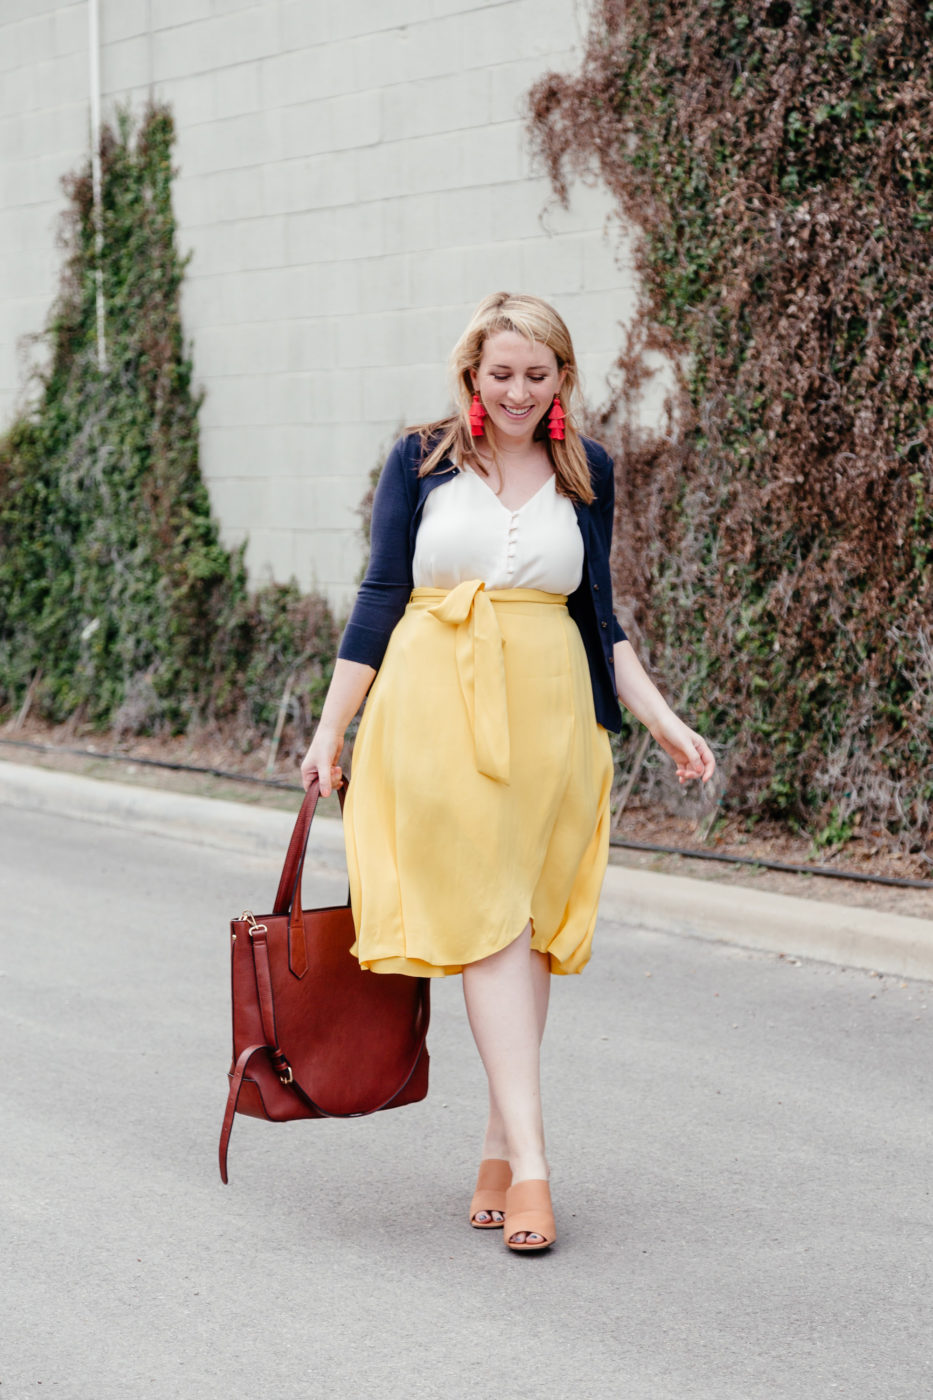 Casual Summer Office Outfits | How to Wear Yellow to Work | How to Bring Color into Your Work Wardrobe via feminine fashion blogger Glitter & Spice